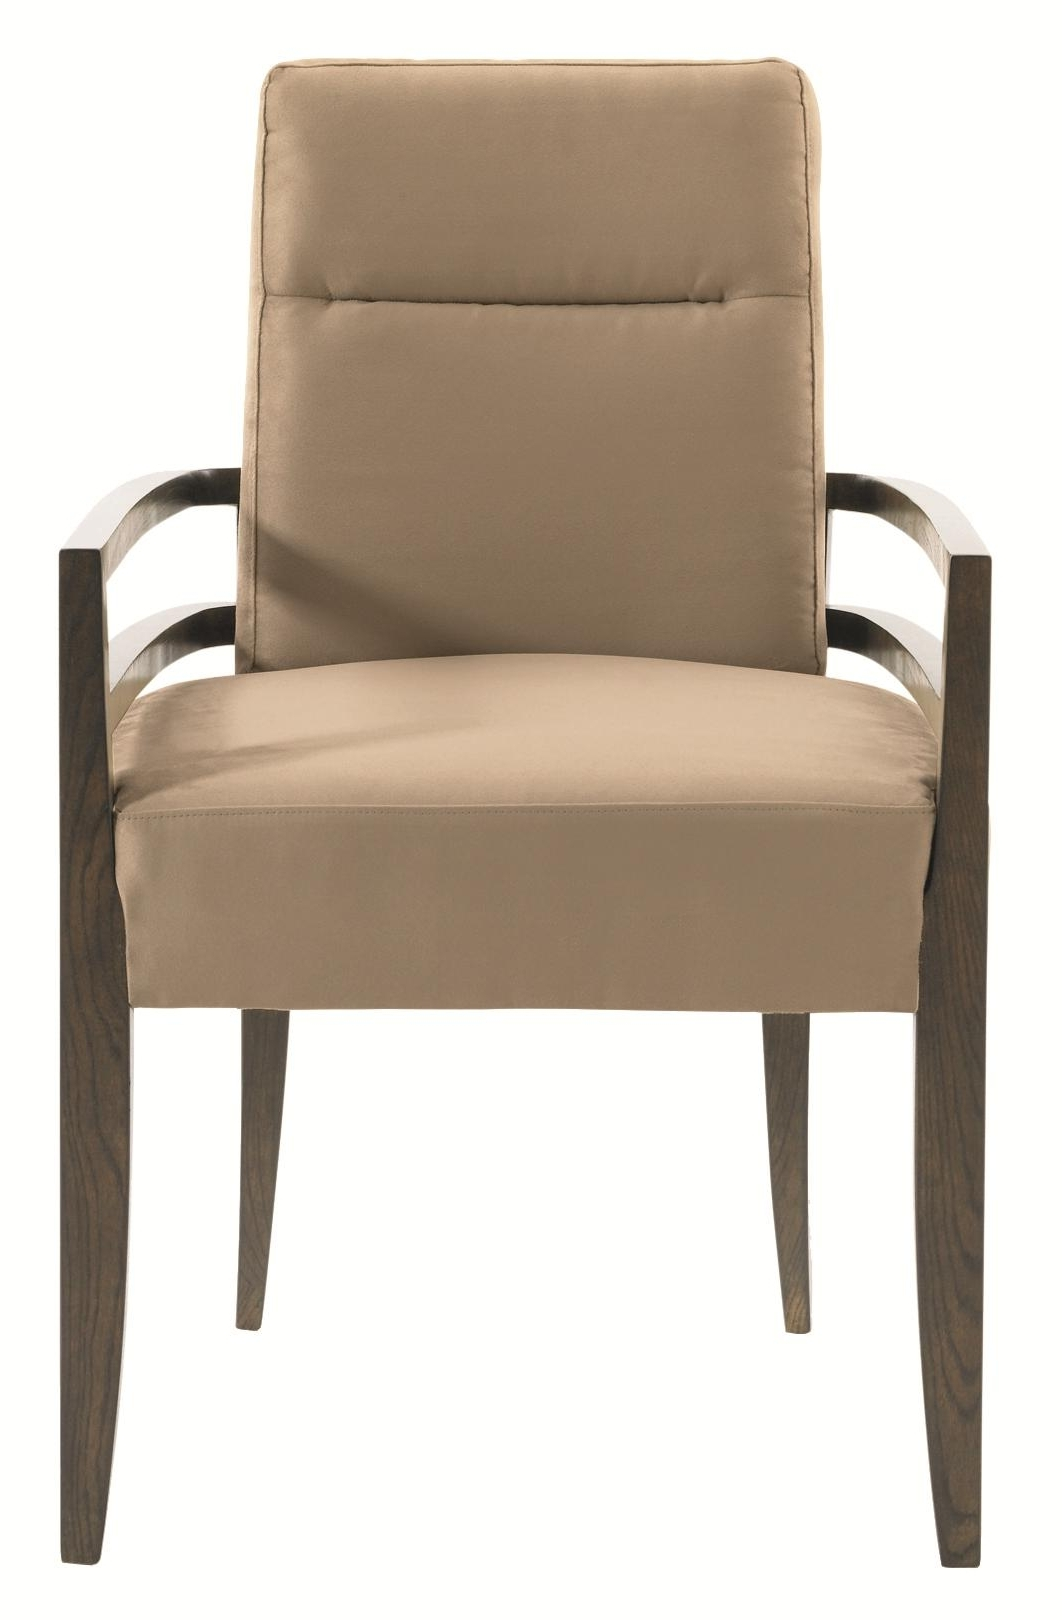 Schnadig Modern Artisan Craftsmen Chair With Upholstered Seat And Throughout Popular Craftsman Upholstered Side Chairs (View 11 of 20)